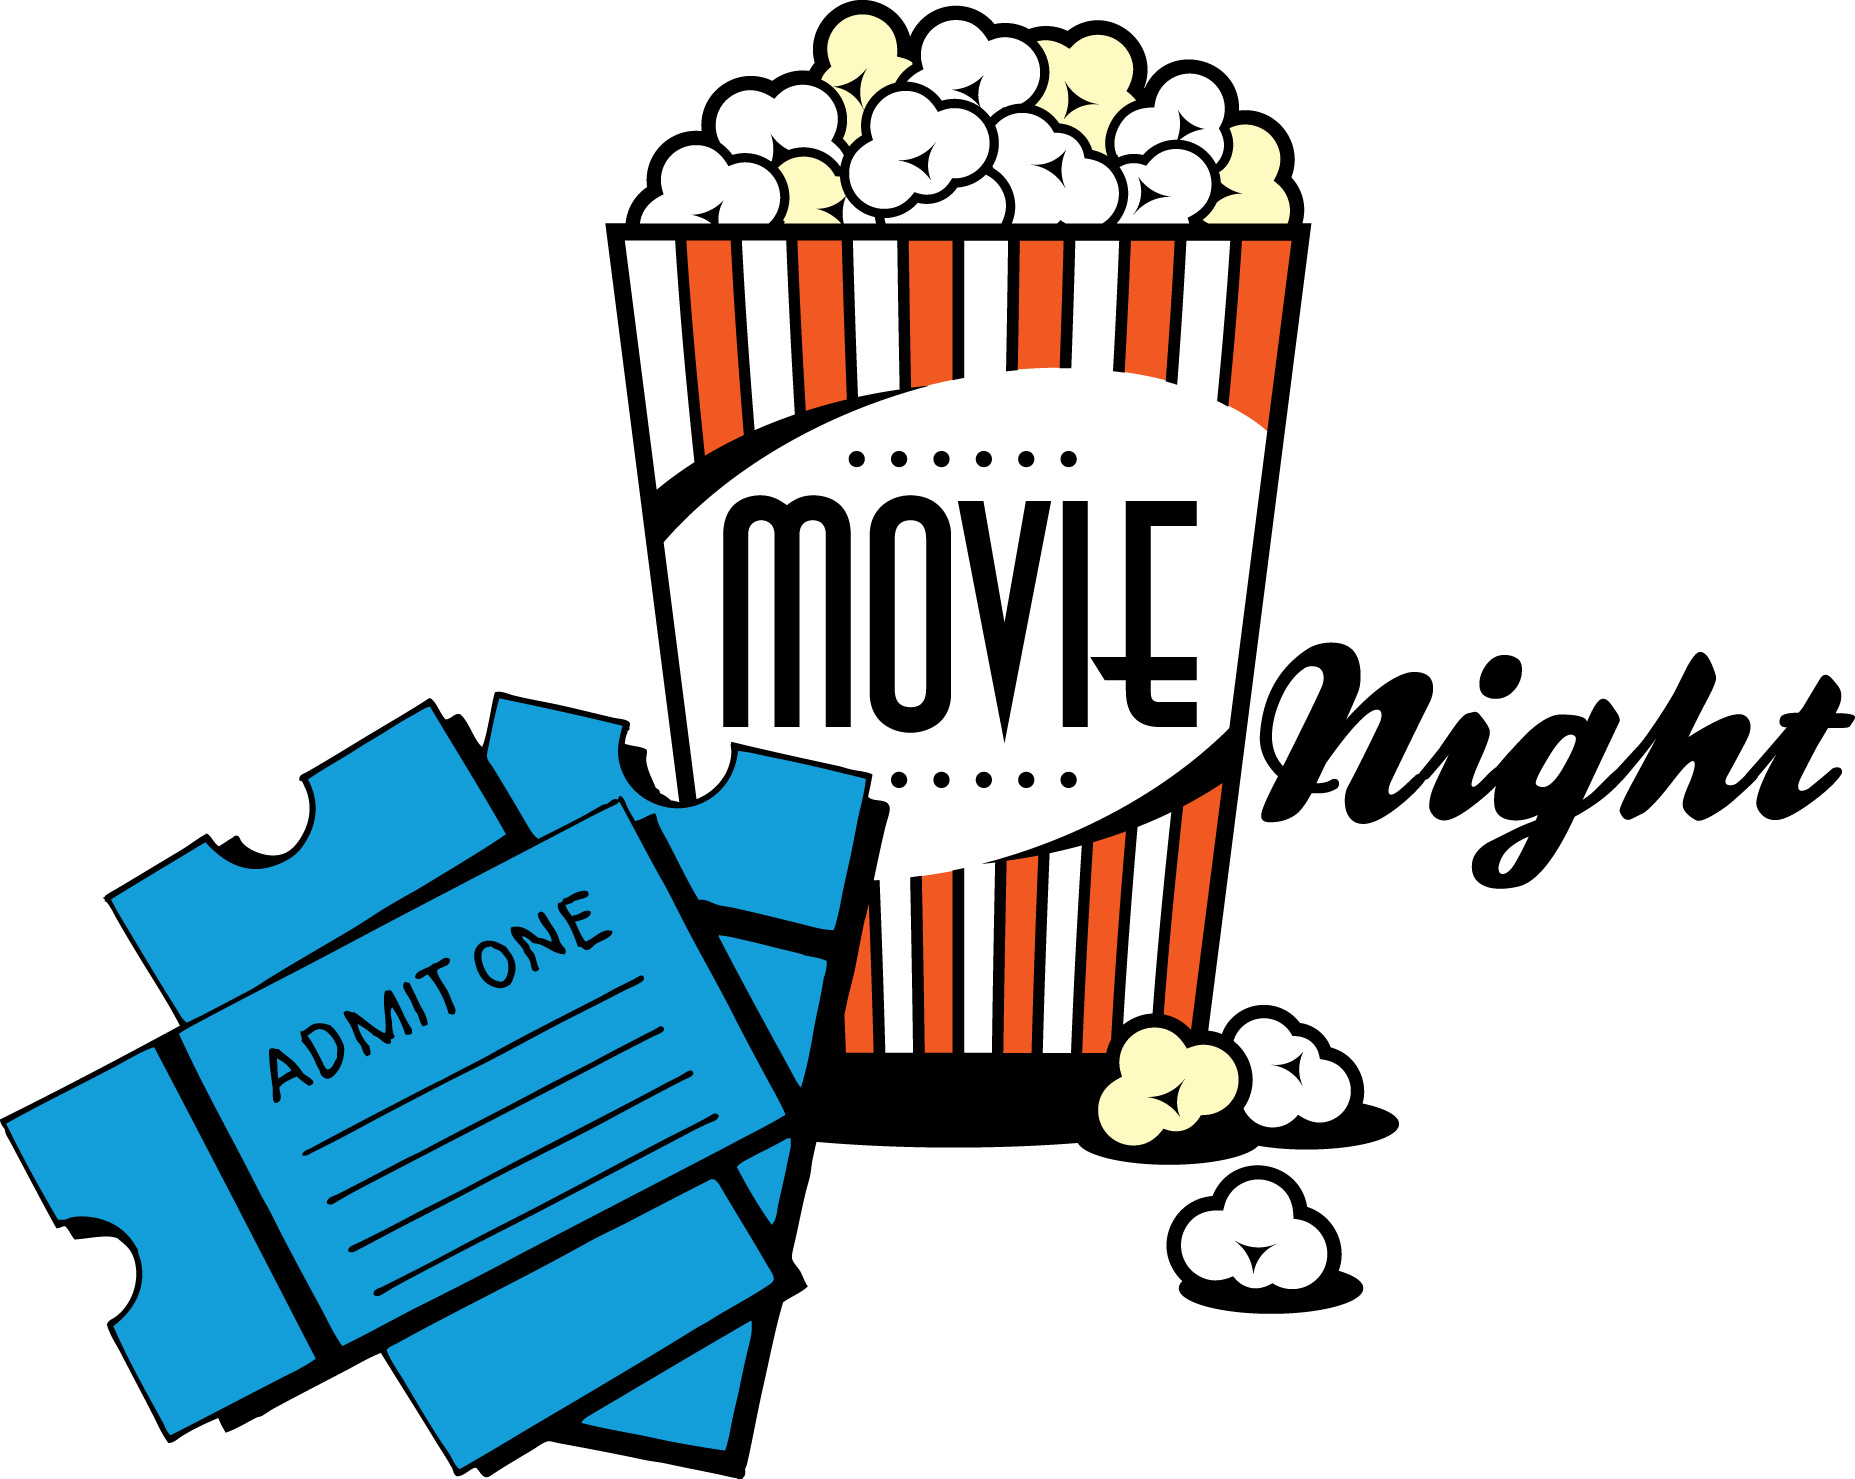 Outdoor Movie Night Clipart   Clipart Panda   Free Clipart Images